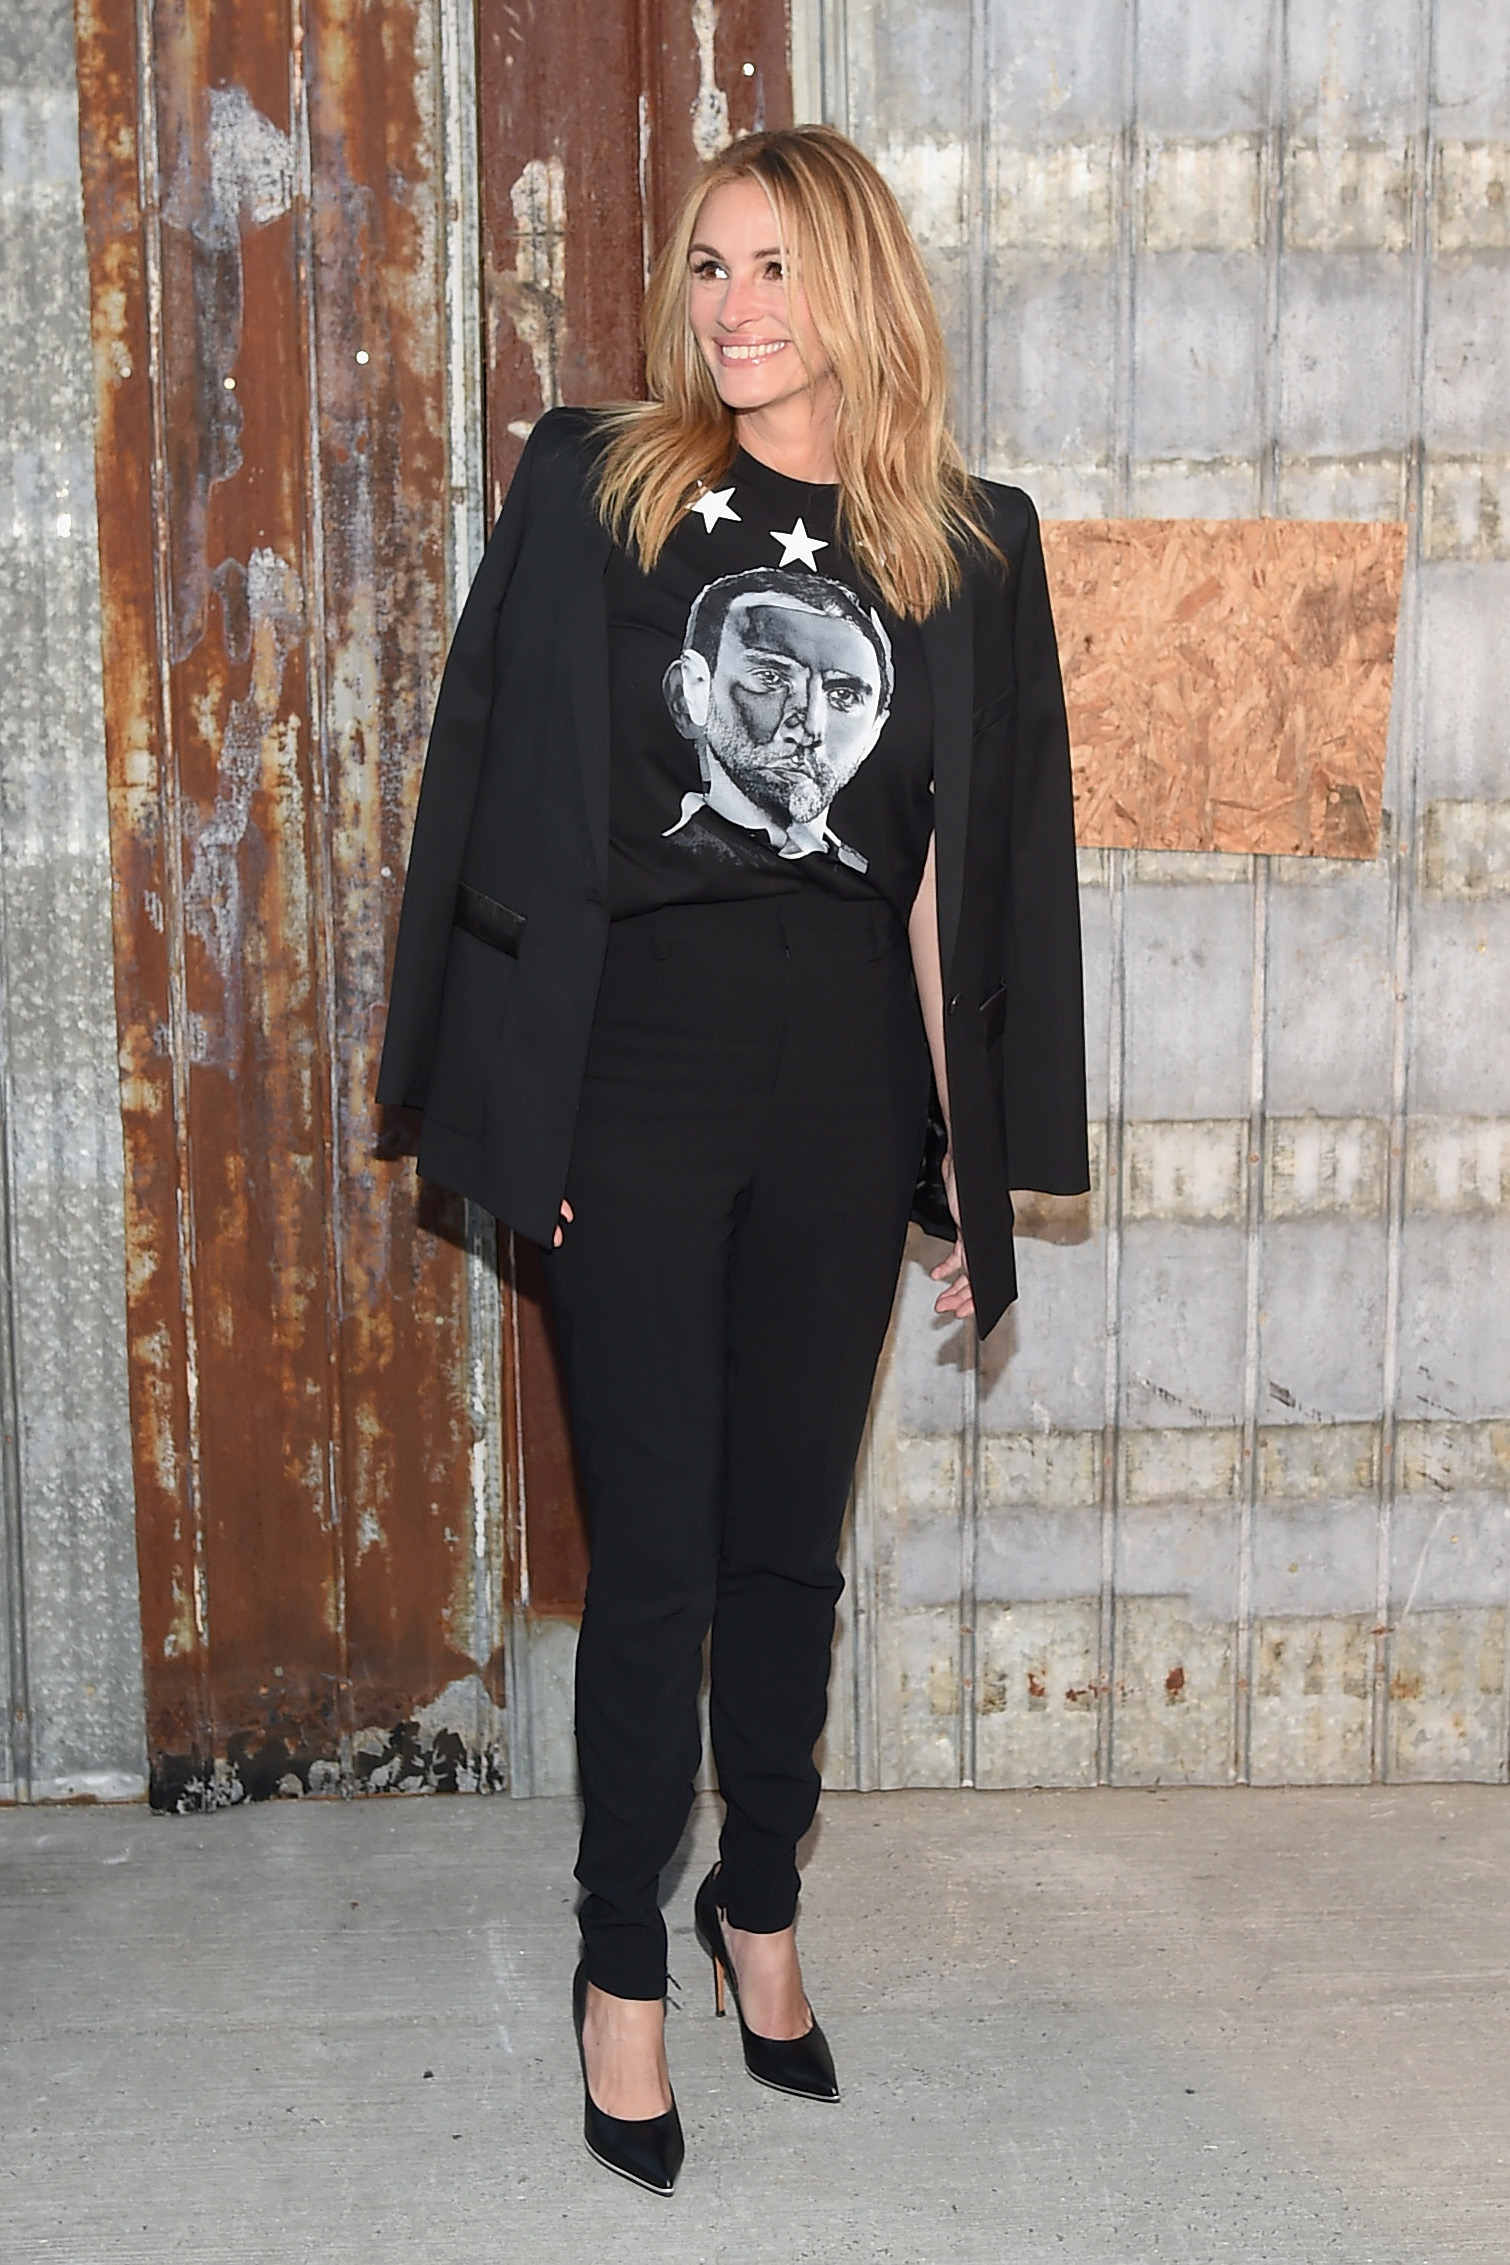 New York Fashion Week's 10 best and worst celebrity fashion moments [GALLERY]